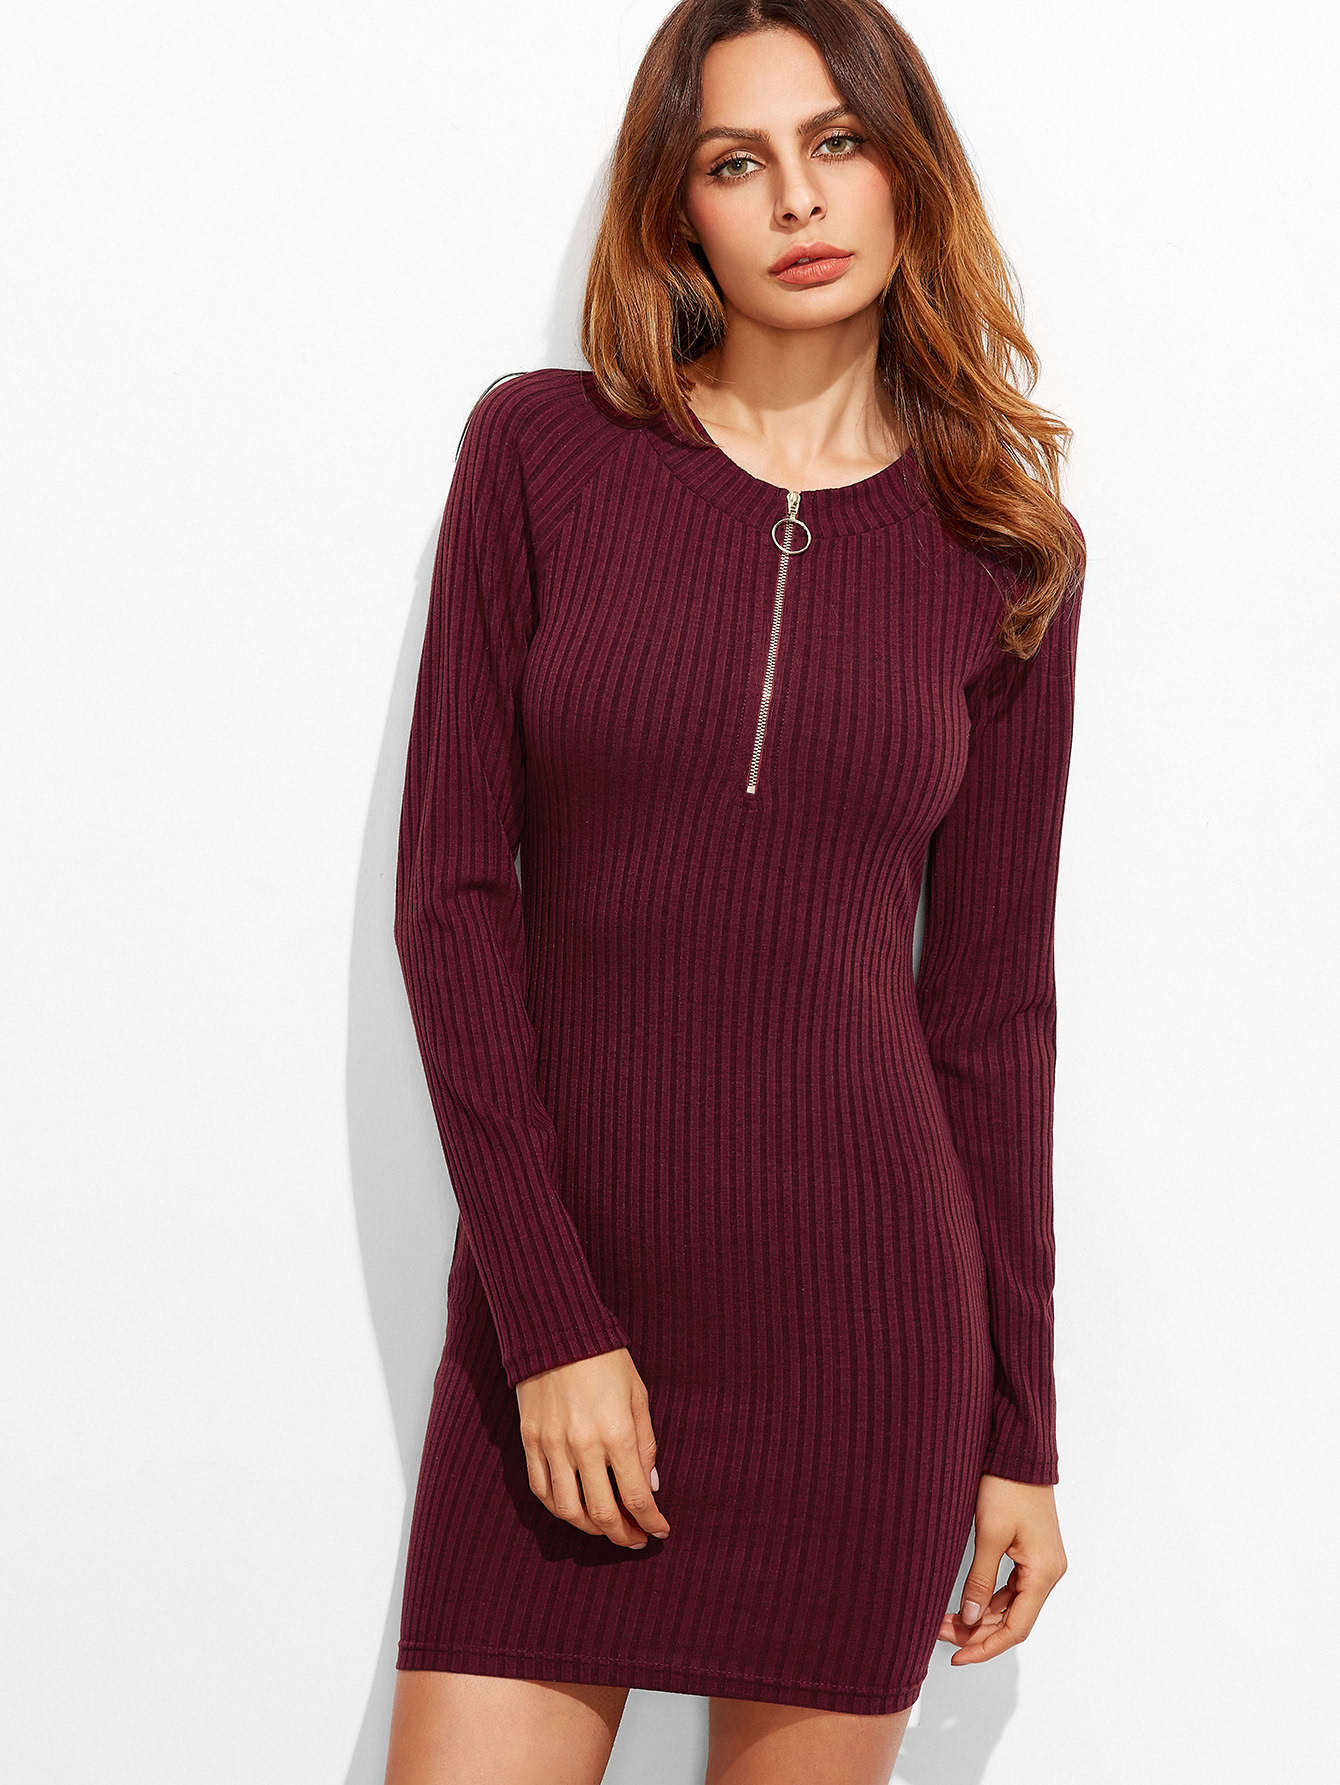 Burgundy Zip Neck Raglan Sleeve Ribbed Knit Bodycon Dress dress161206714